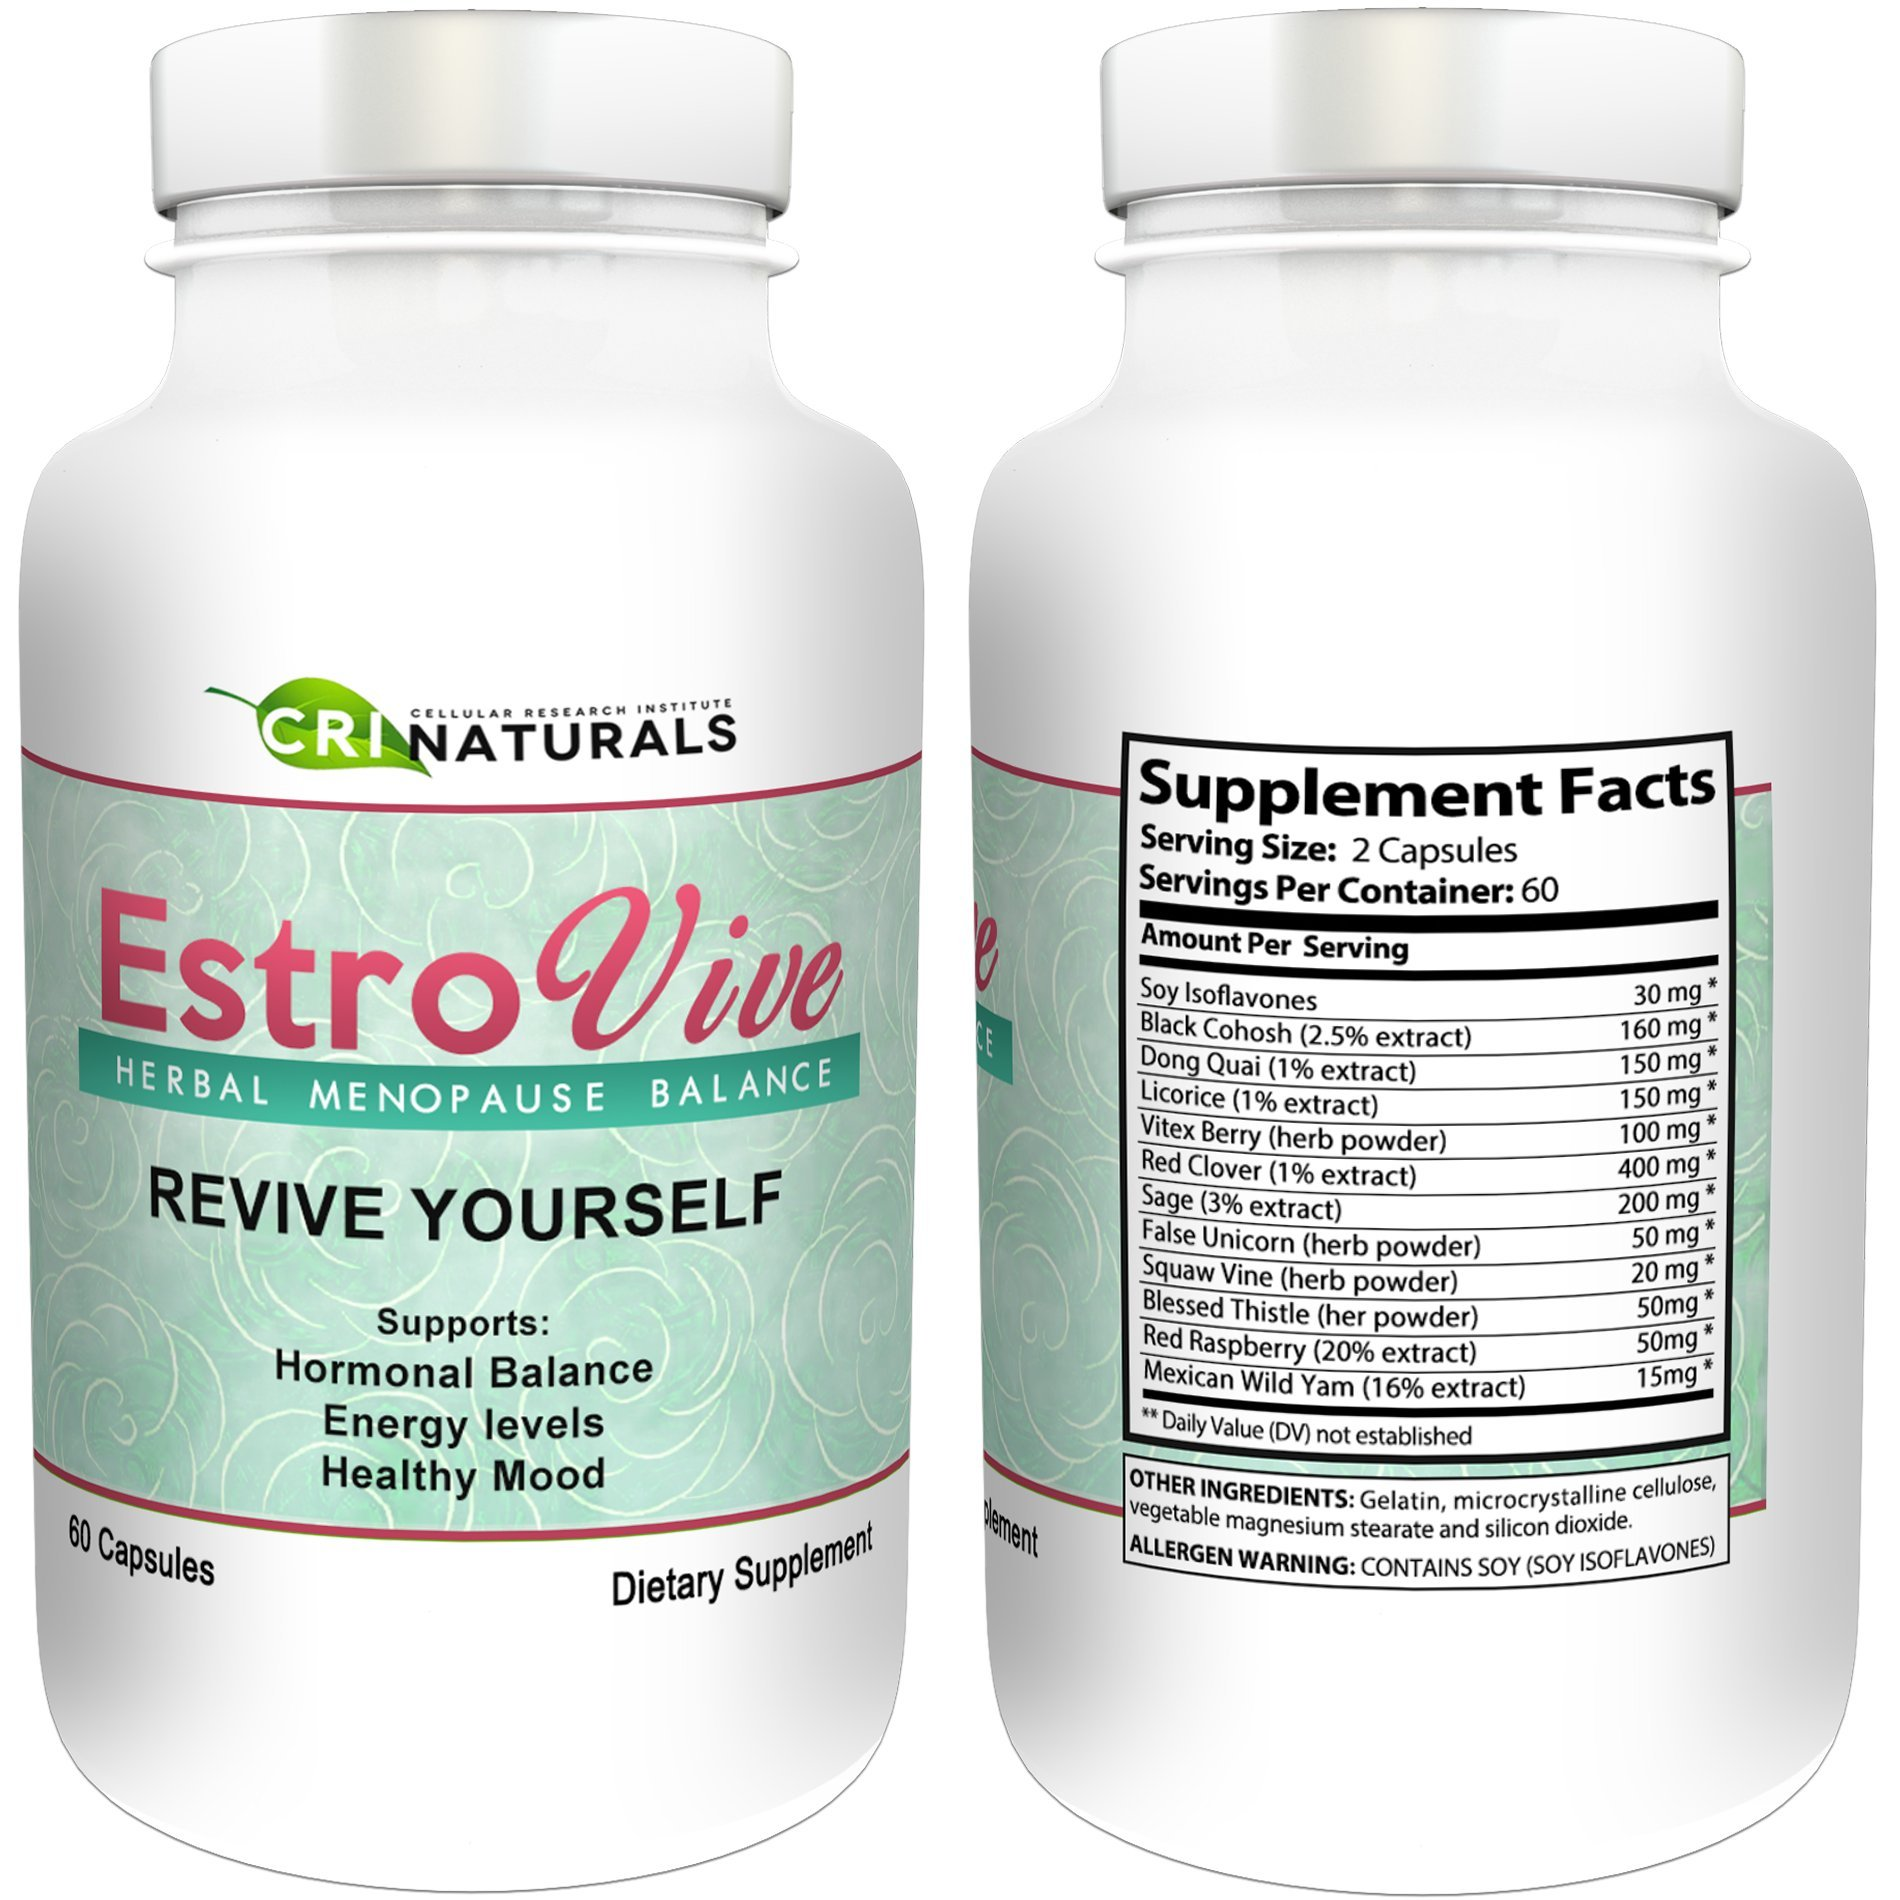 Estrovive - Hot Flashes Menopause Relief - Black Cohosh Menopause Complex - Sleeping Pills - Hot Flash Relief (2-pack) by CRI Naturals (Image #7)